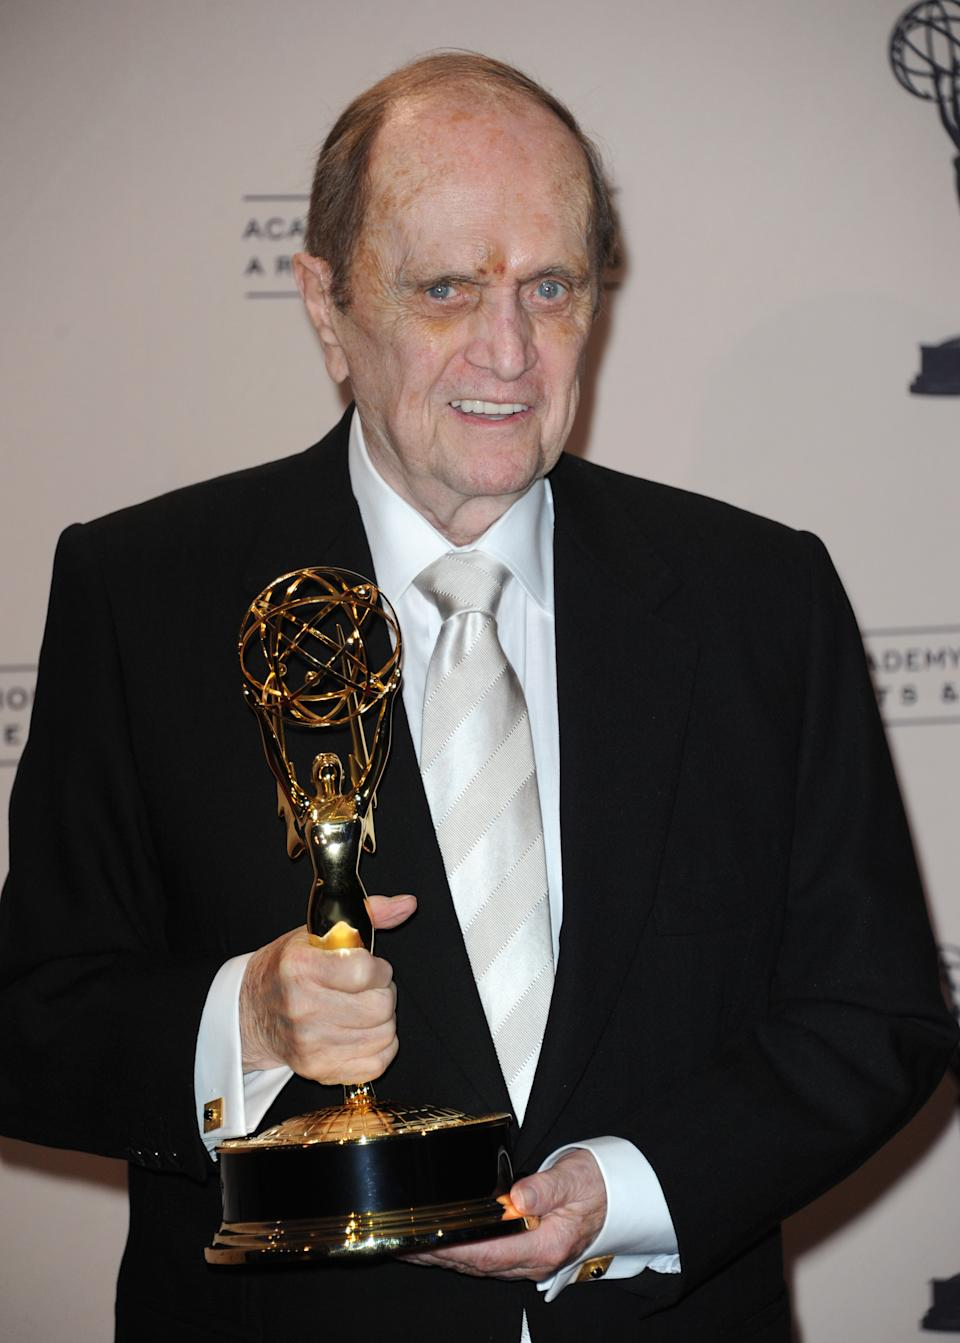 Bob Newhart finally gets his Emmy Award